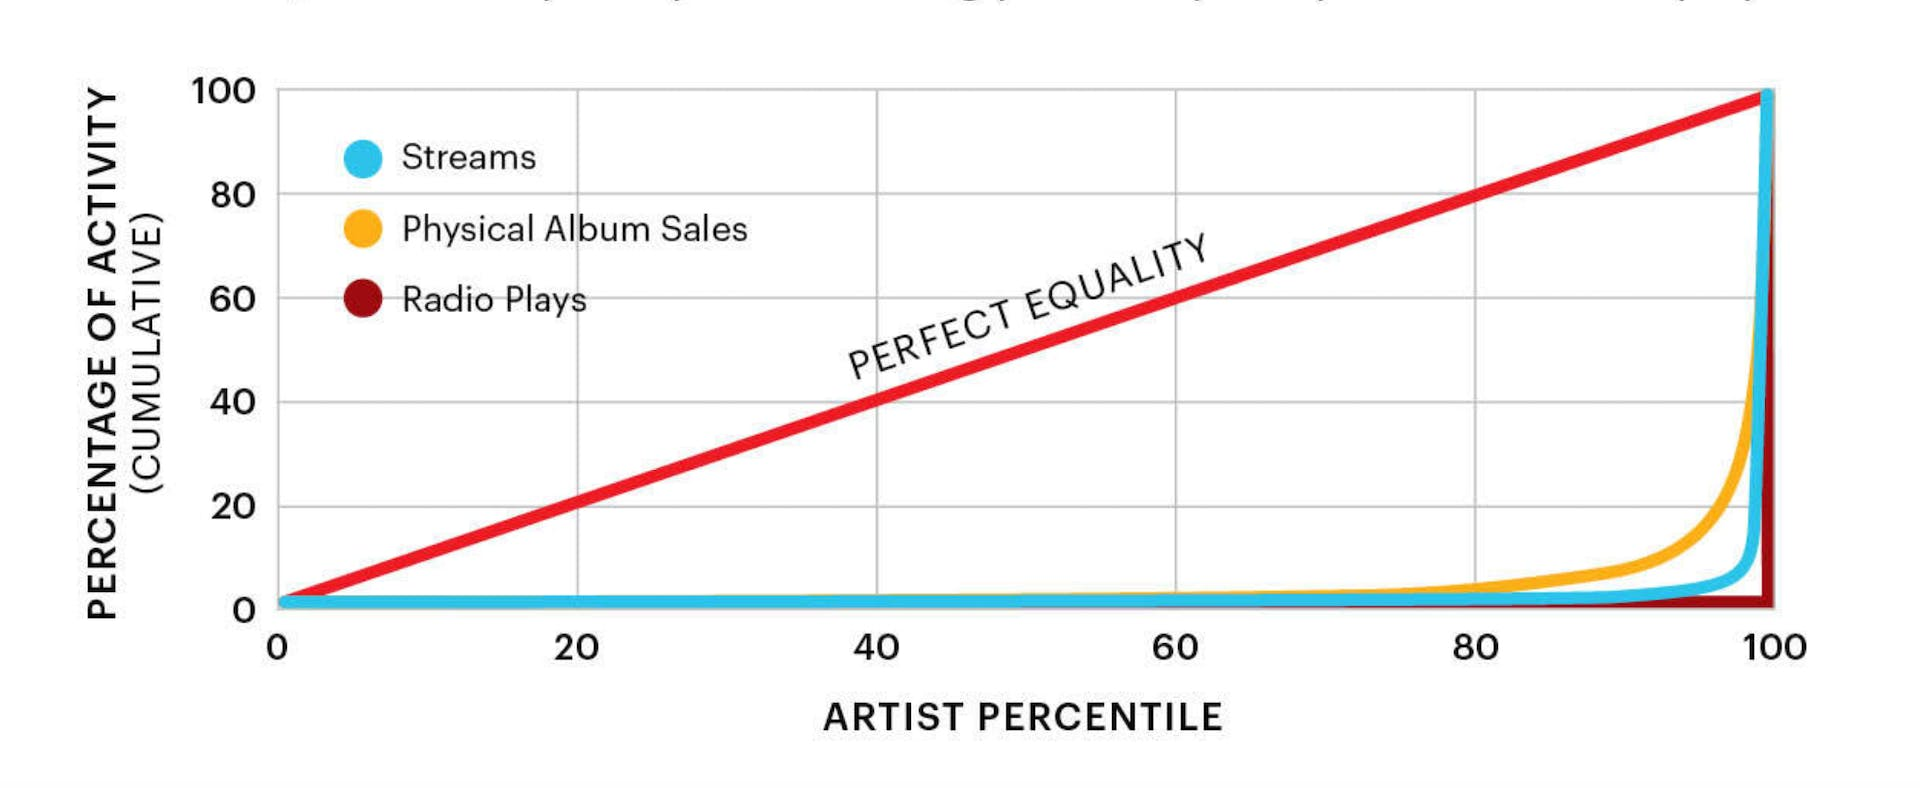 The long tail of music consumption. The top 1 percent of artists receive 90% of music steams. This ratio is more equitable for physical album sales, but less equitable for radio plays.